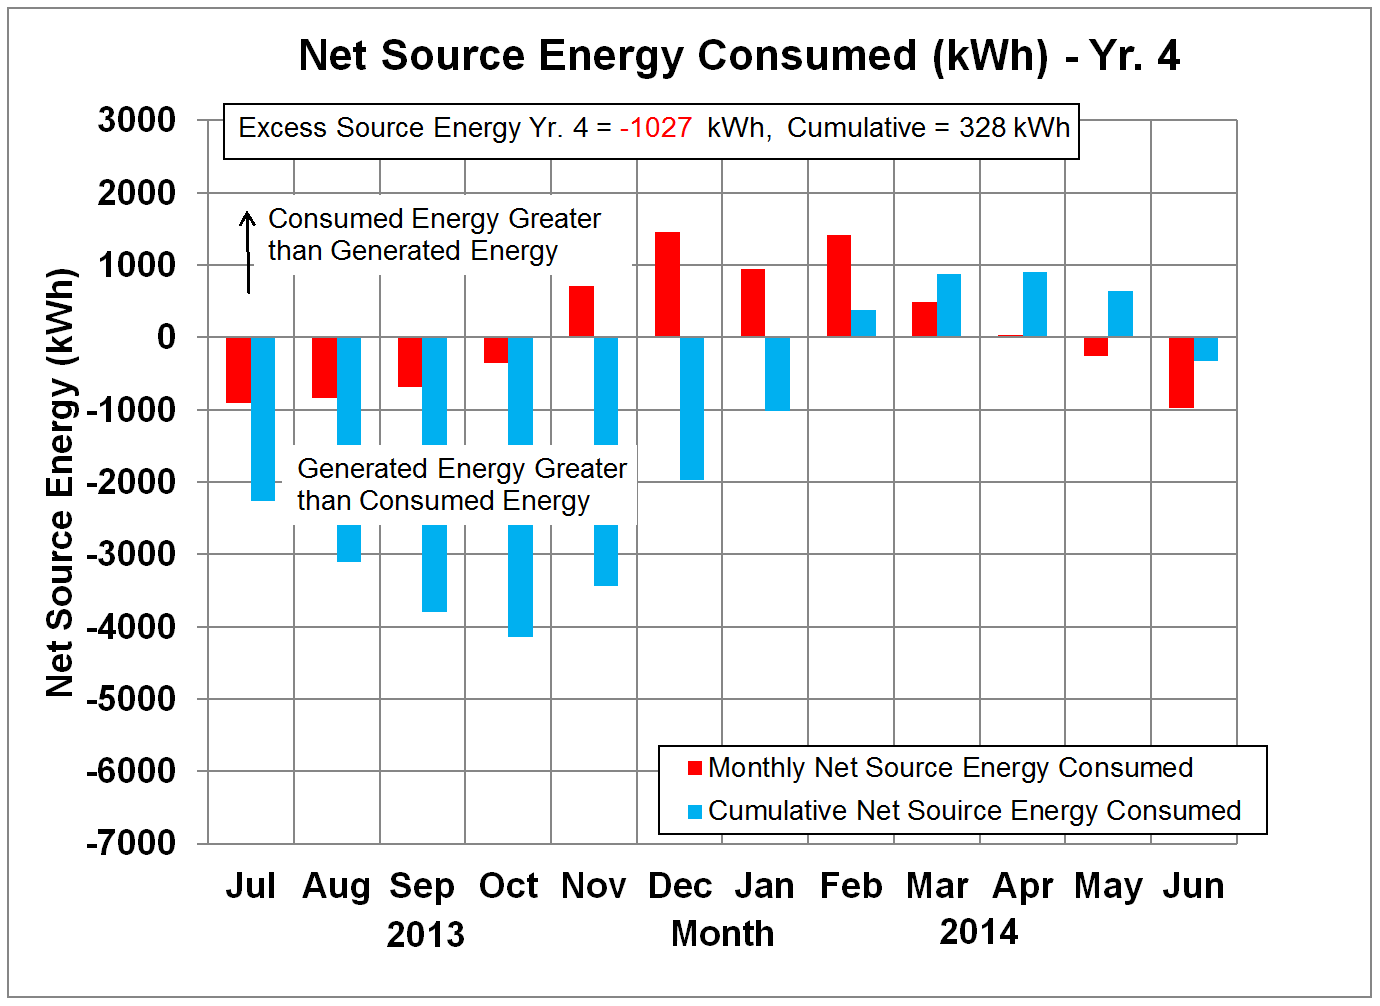 Net Source Energy in kWh - Yr. 4